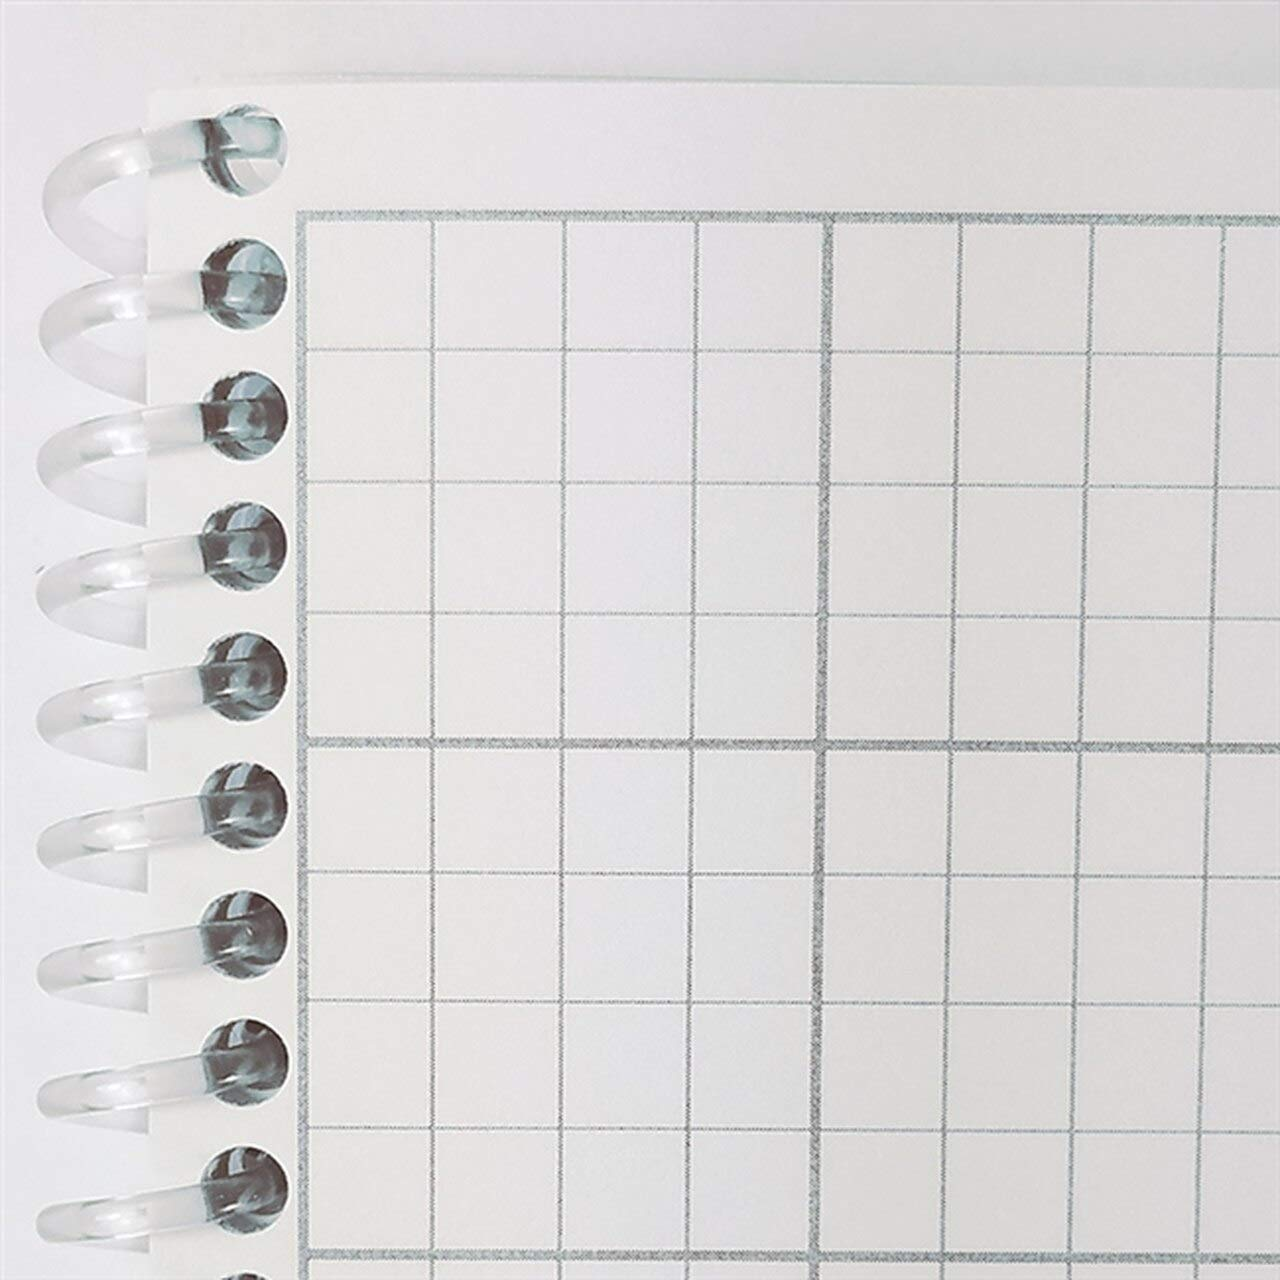 Cleanroom Notebook Max 86% OFF Engineering Discount is also underway Grid Side 5 Latex-Free Spiral